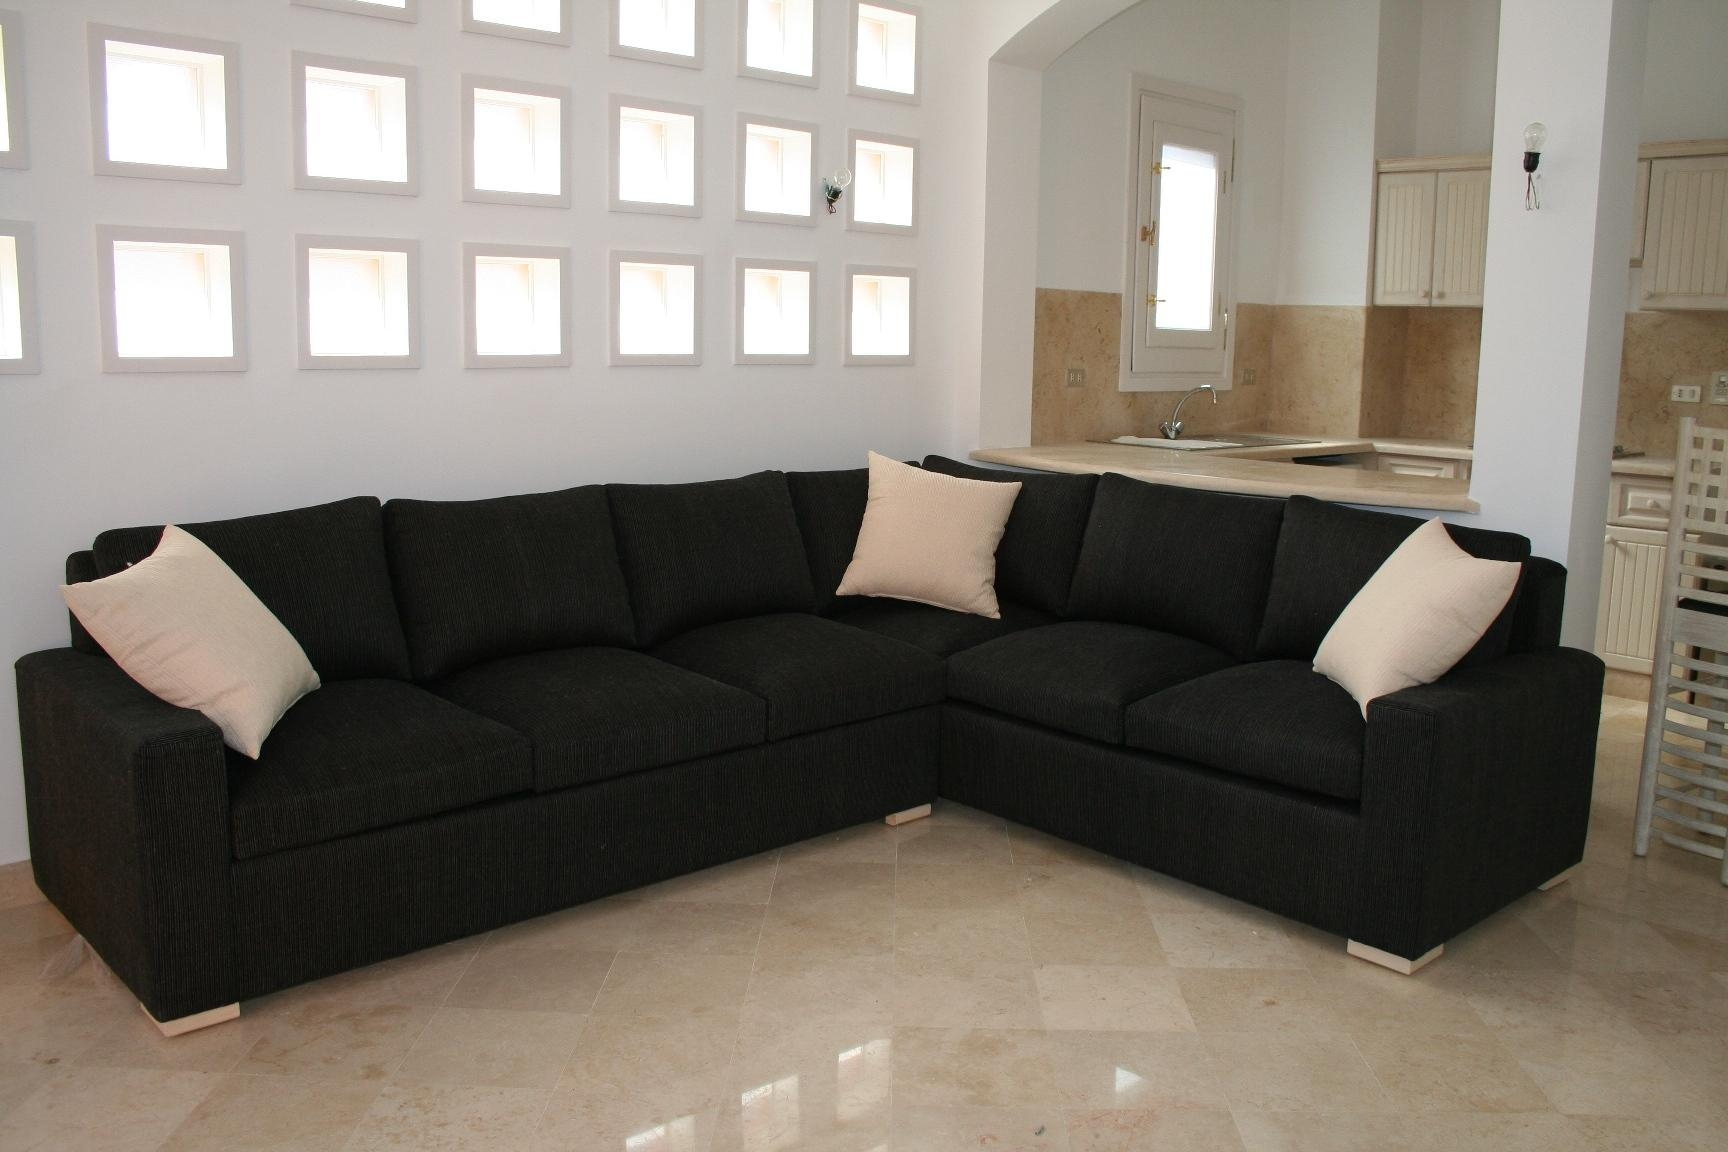 Espresso L Shaped Fabric Tufted Sectional Sofa Design Ideas Come Regarding Black Fabric Sectional (Image 9 of 15)